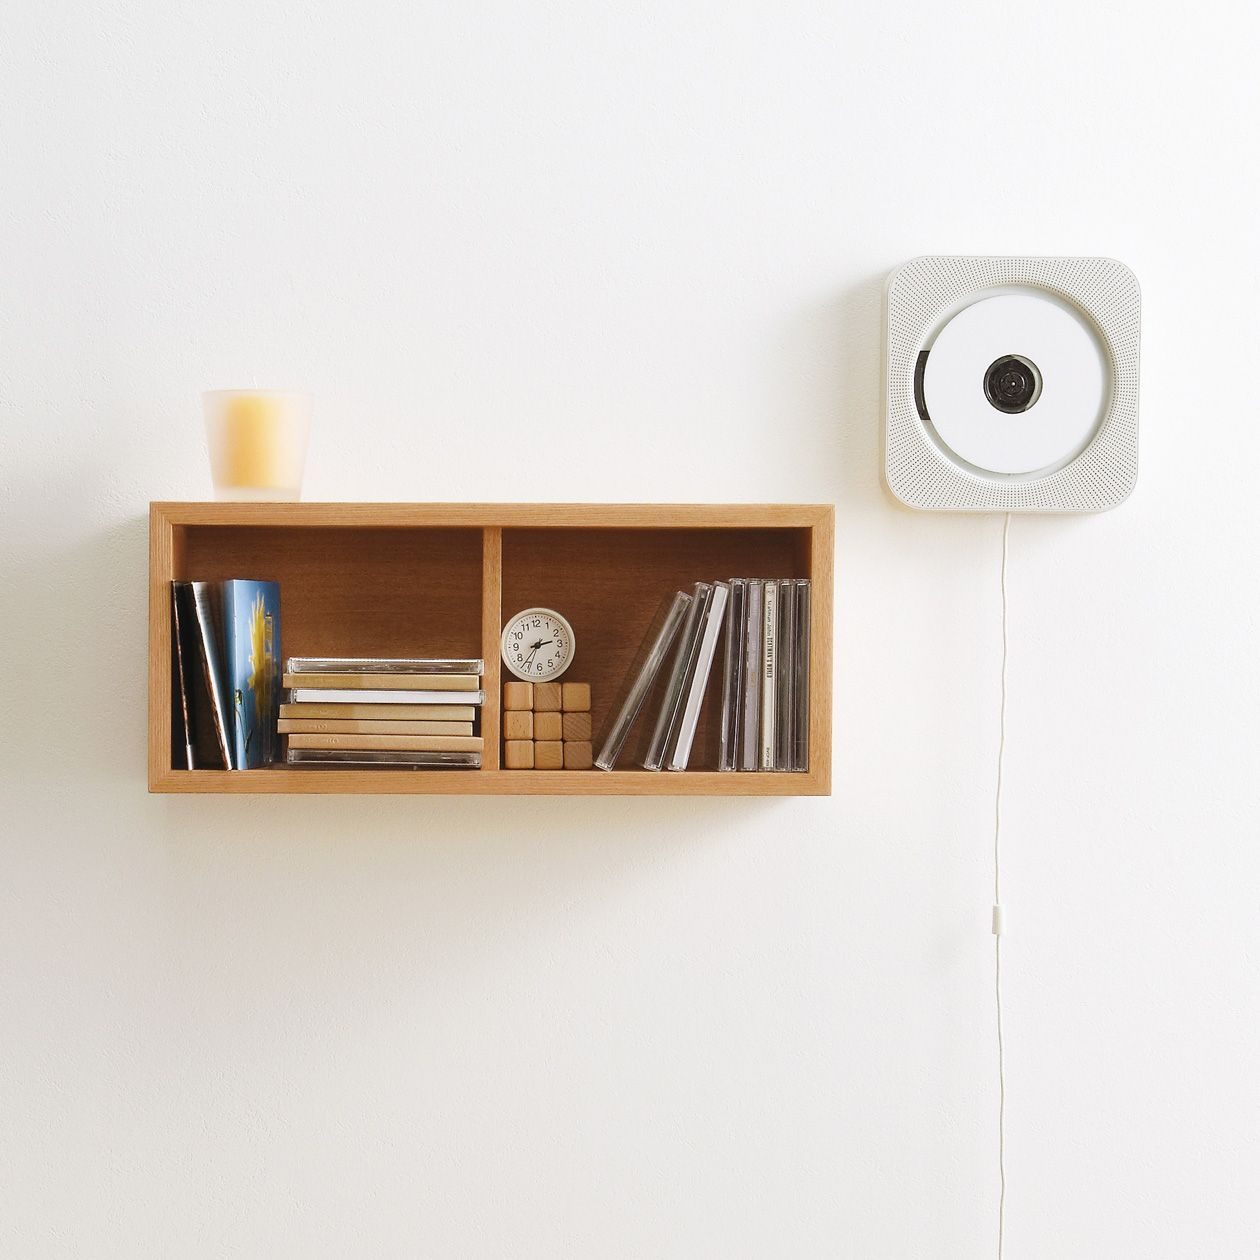 Muji Wall Mounted Cd Player Geekchic Pinterest Wall